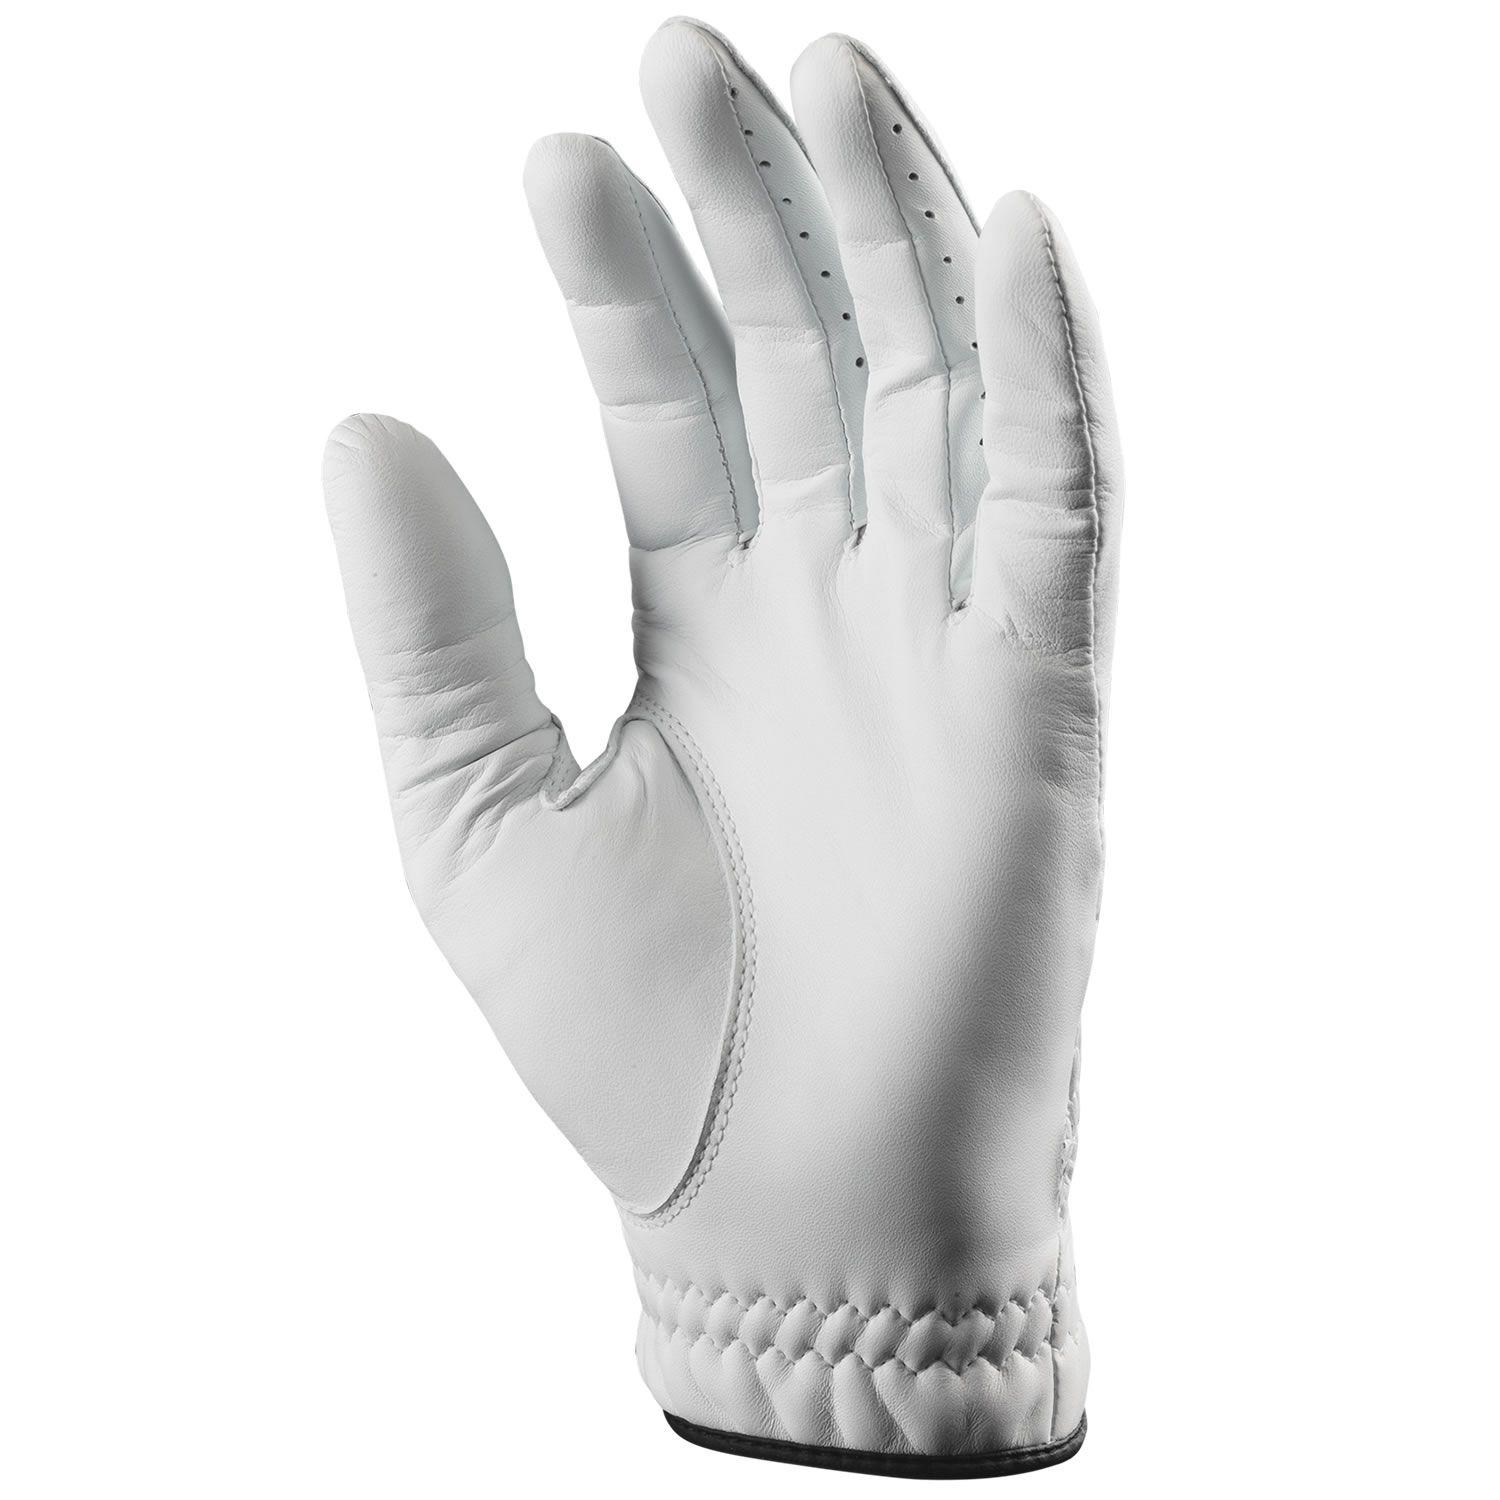 Ping Tour Glove Palm